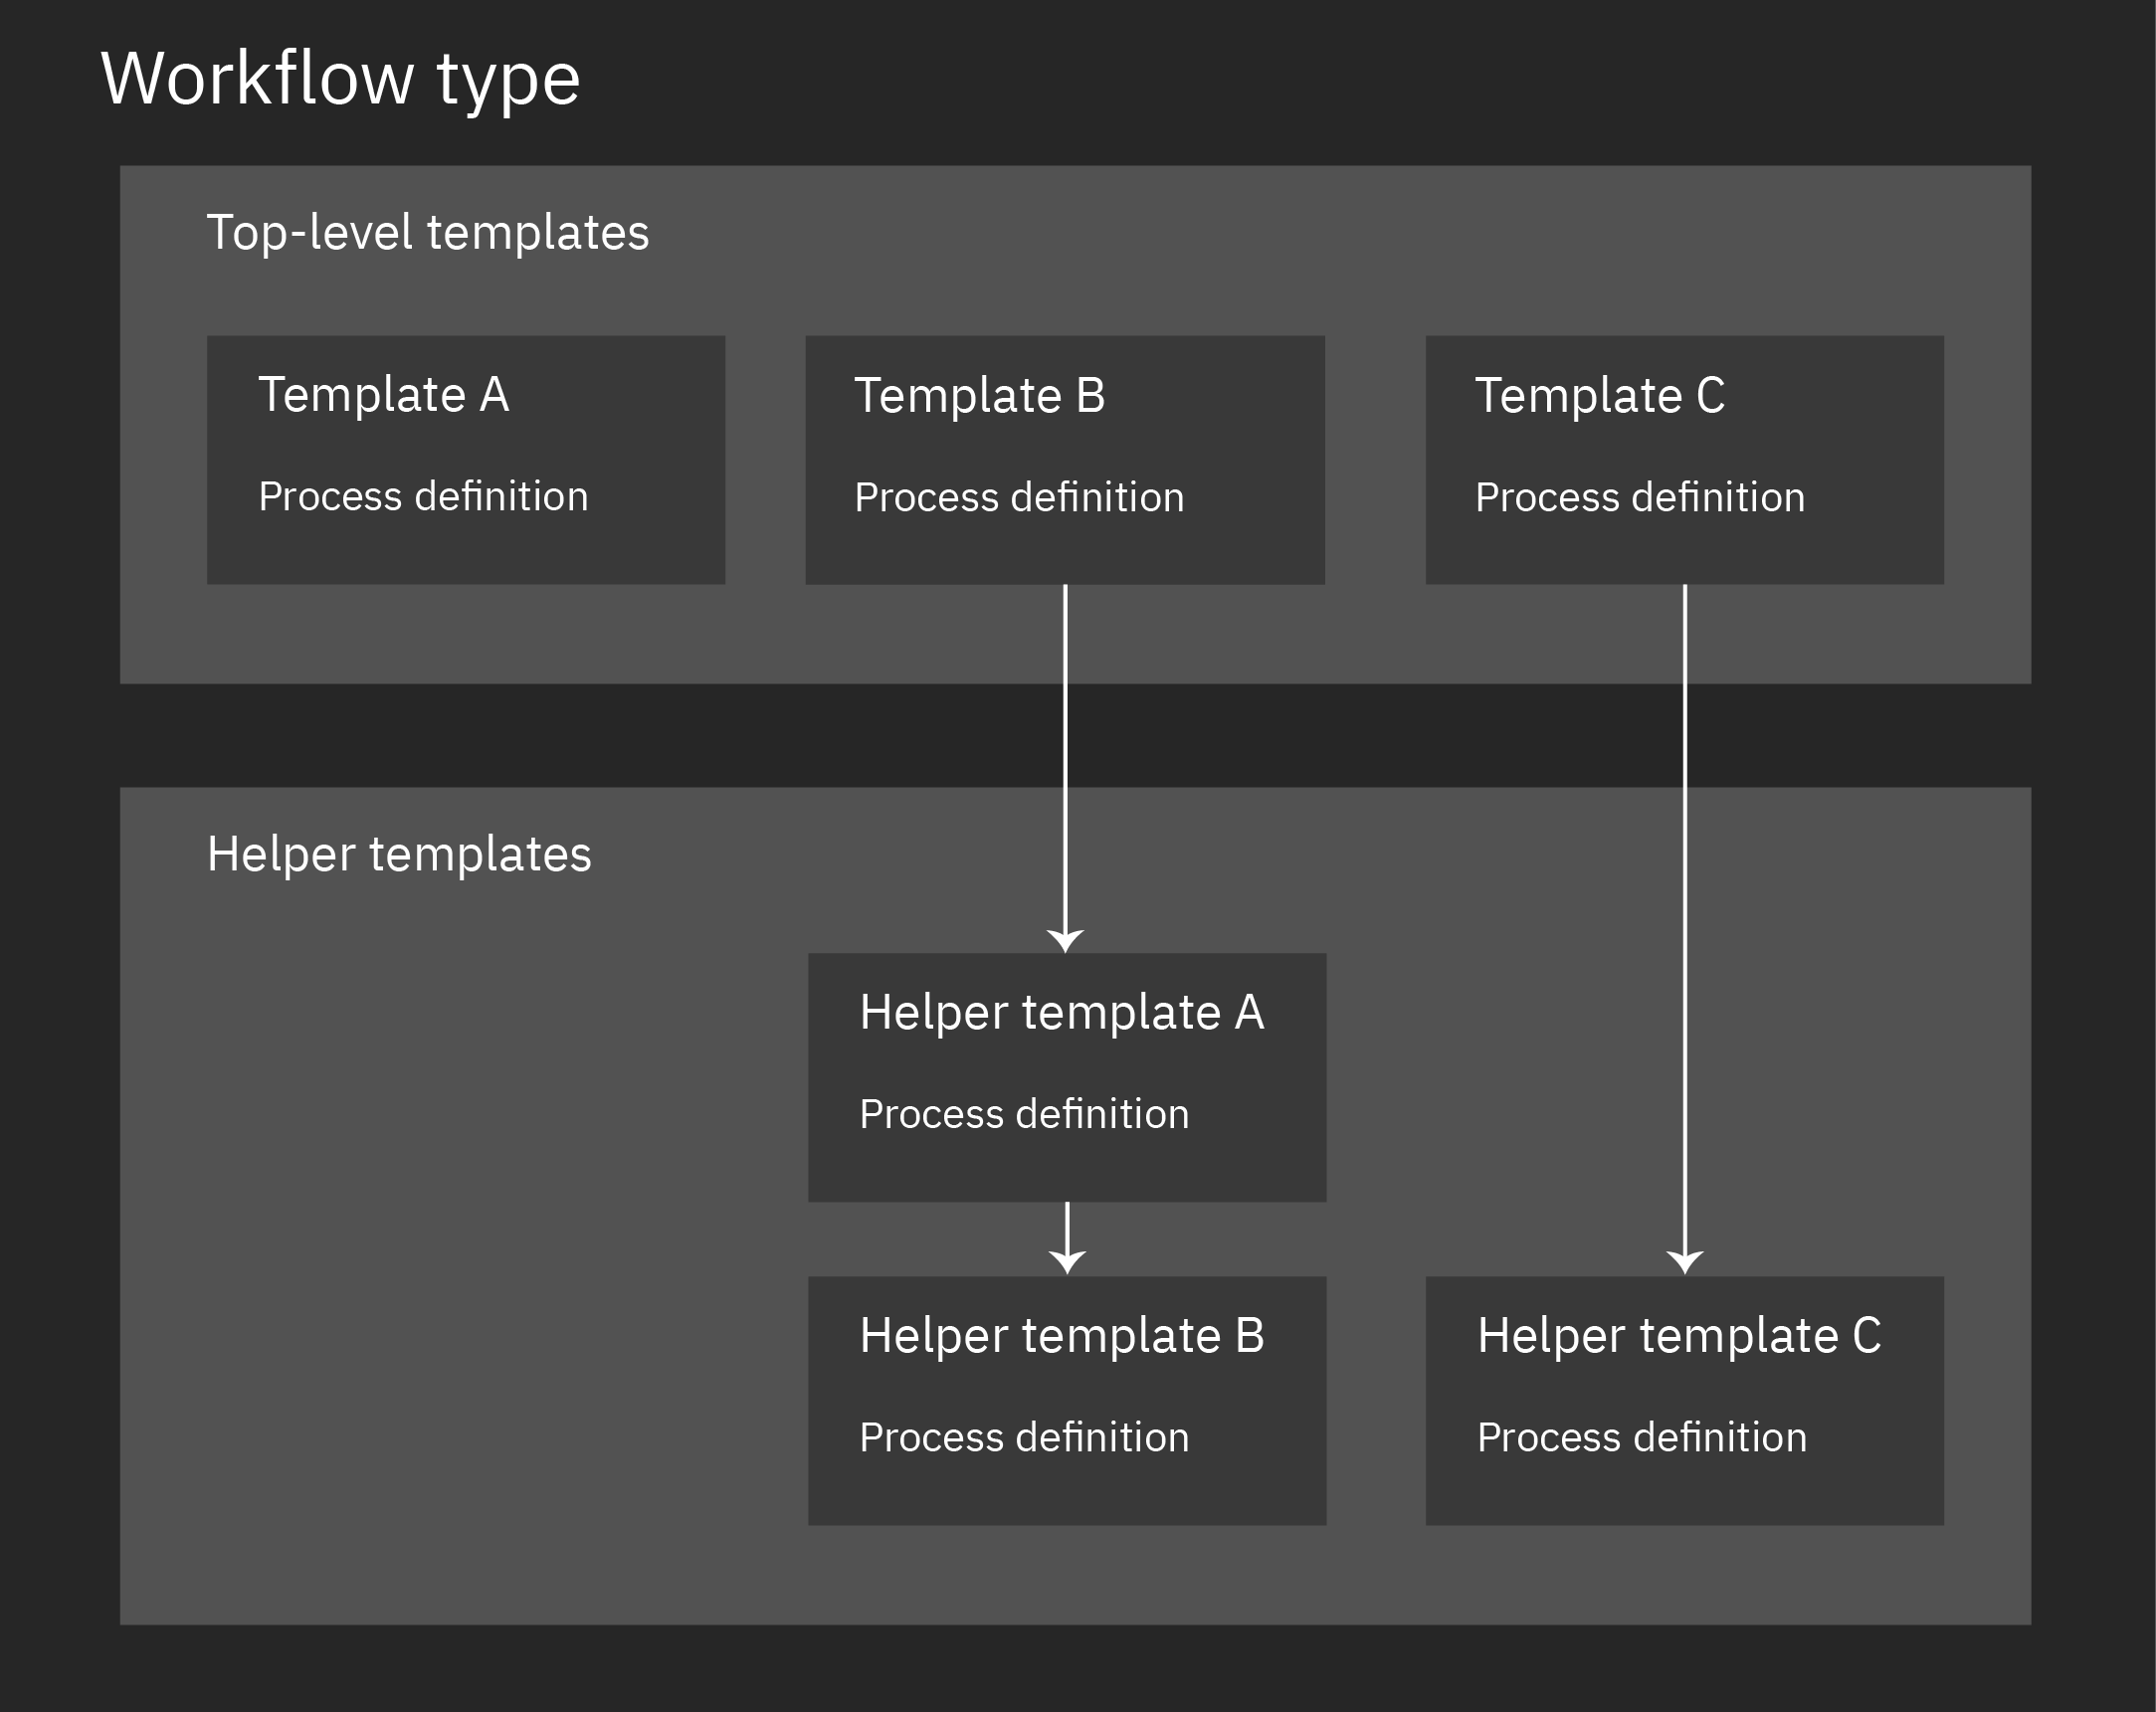 The concepts are described in the subsequent text. This illustration shows a workflow type with three top-level templates. (The templates are called Template A, Template B, and Template C.) Template A does not have any helper templates. Template B uses to Helper template A, which uses Helper template B. Template C uses Helper template C.